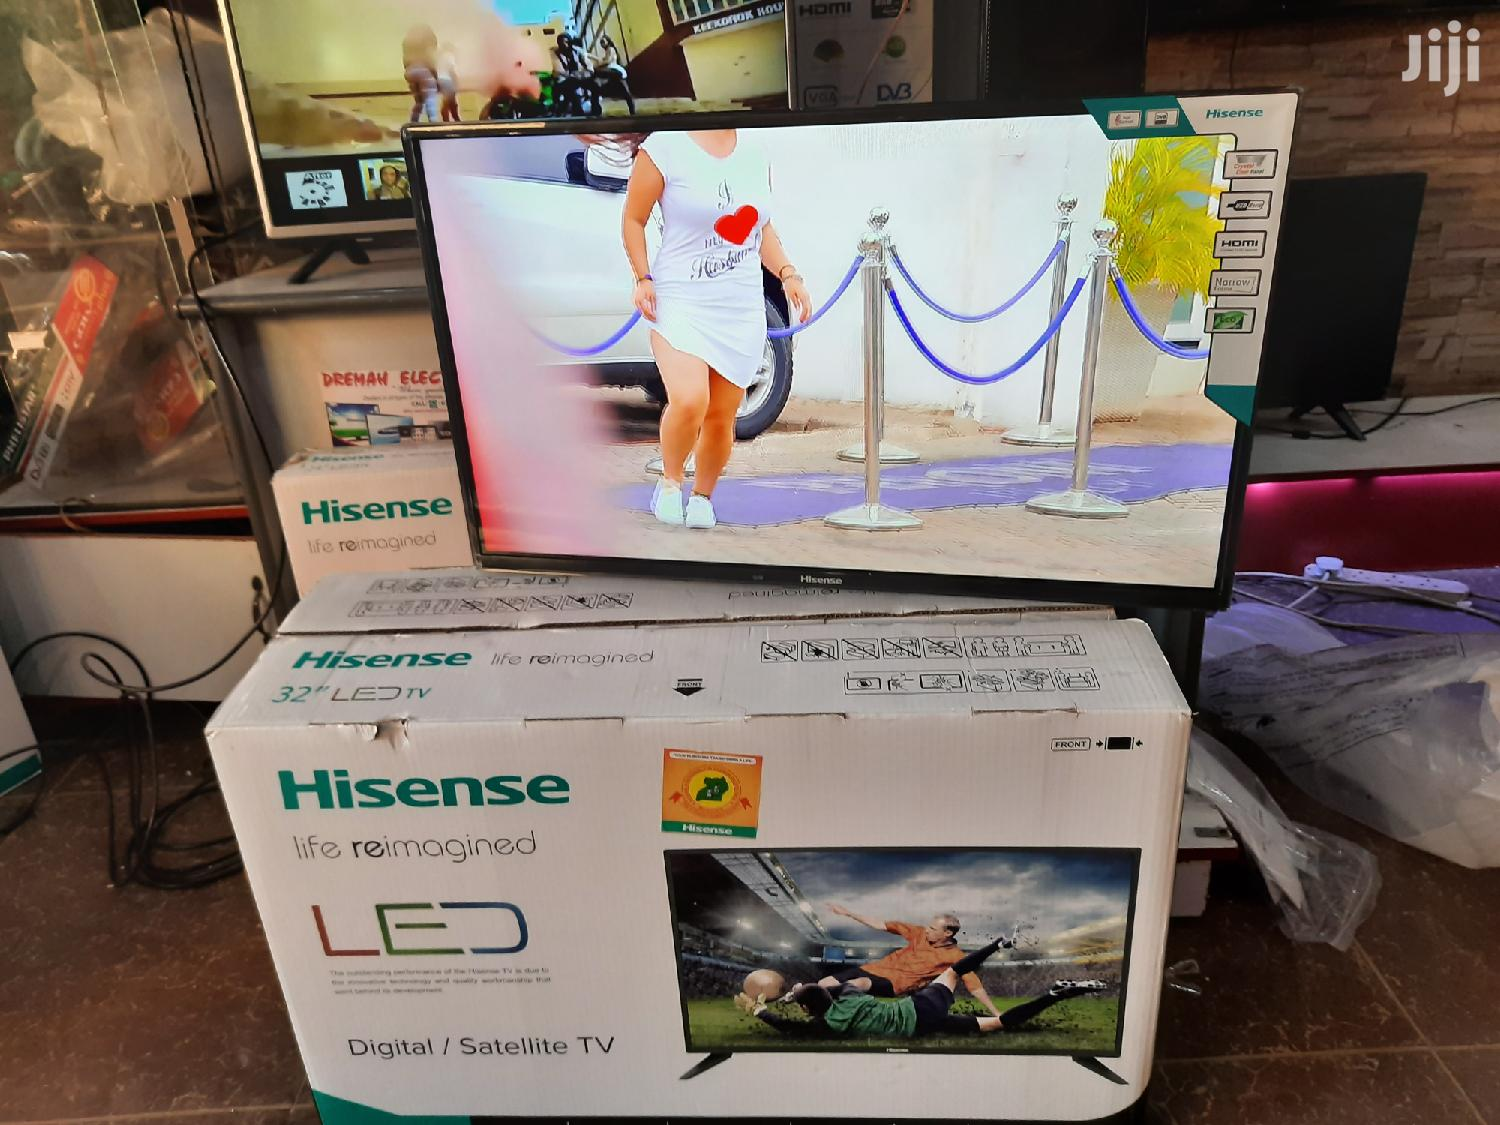 Hisense Digital Satellite Flat Screen TV 32 Inches